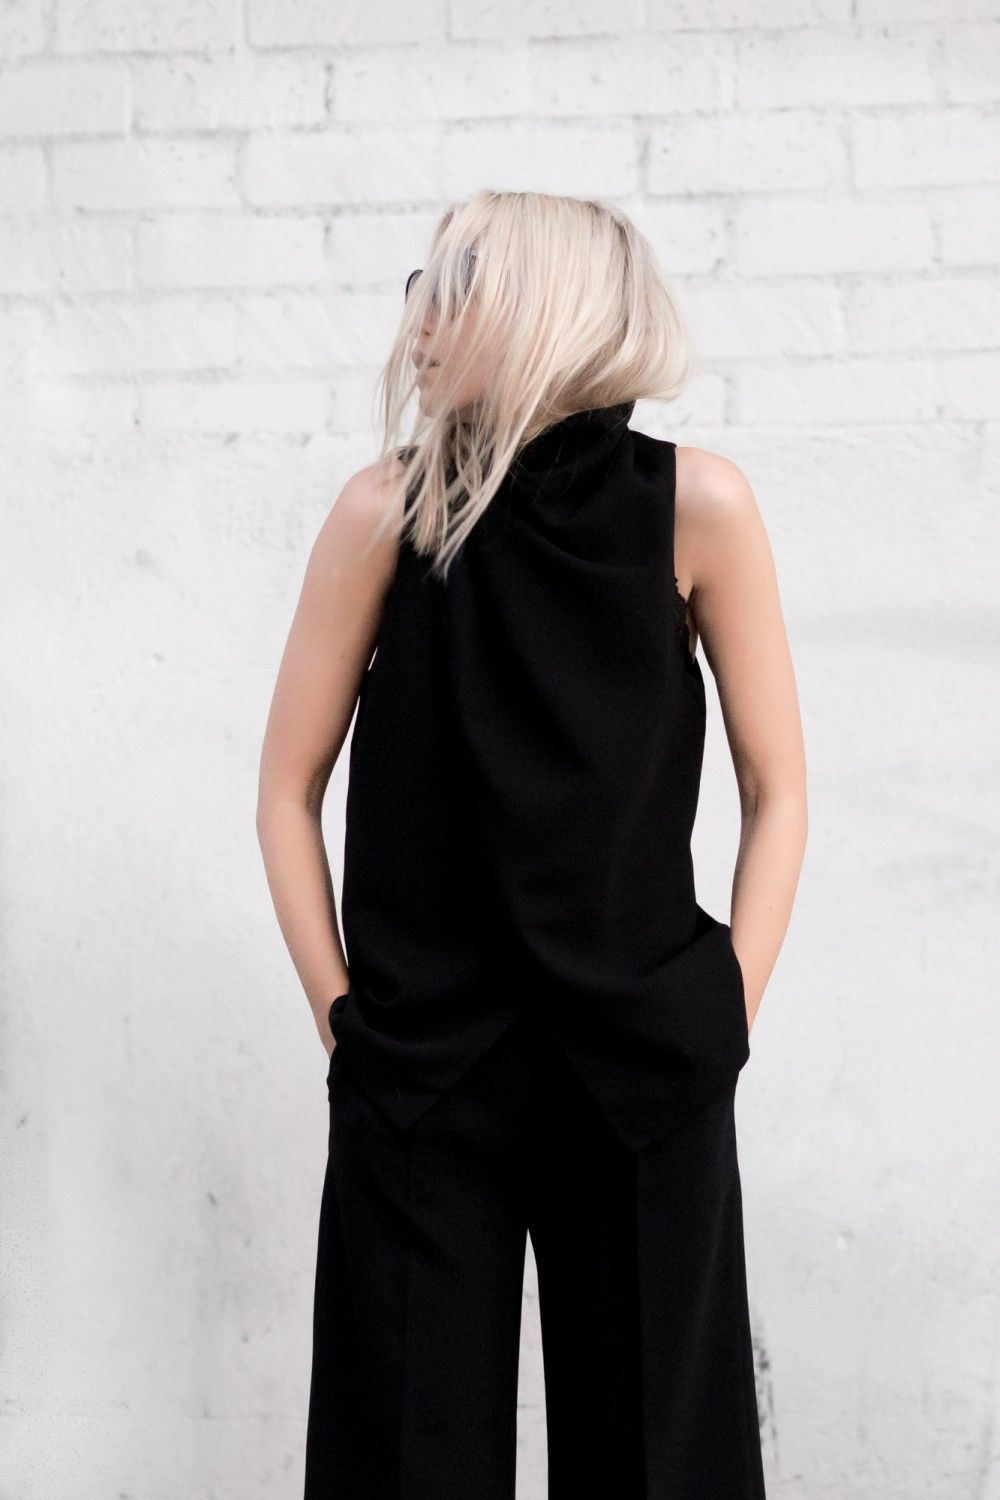 Figtny keeping it real style pinterest minimal chic